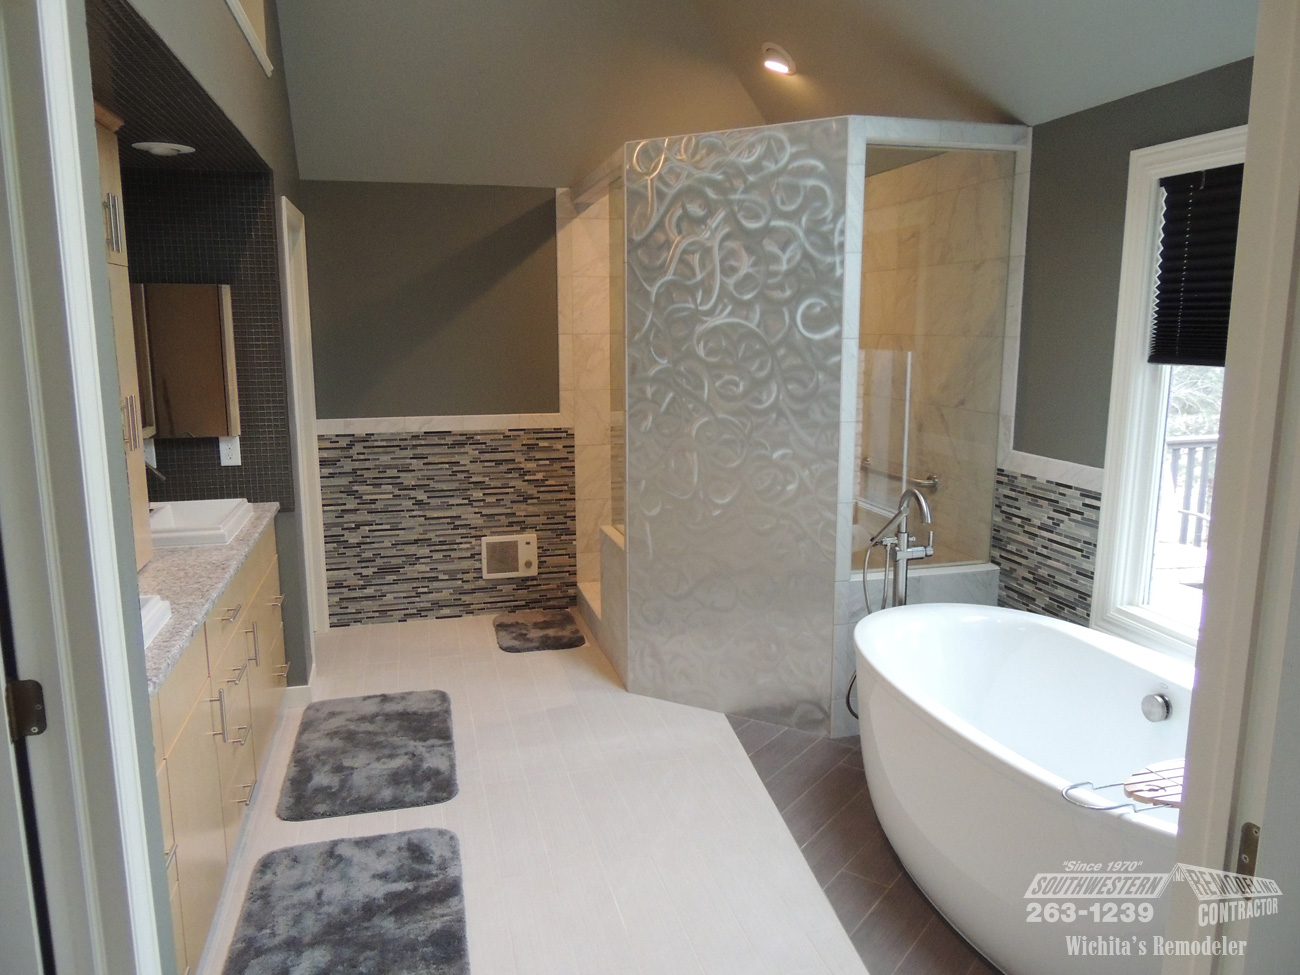 Bathroom Contractor Remodelling bathroom remodeling | southwestern remodeling | wichita